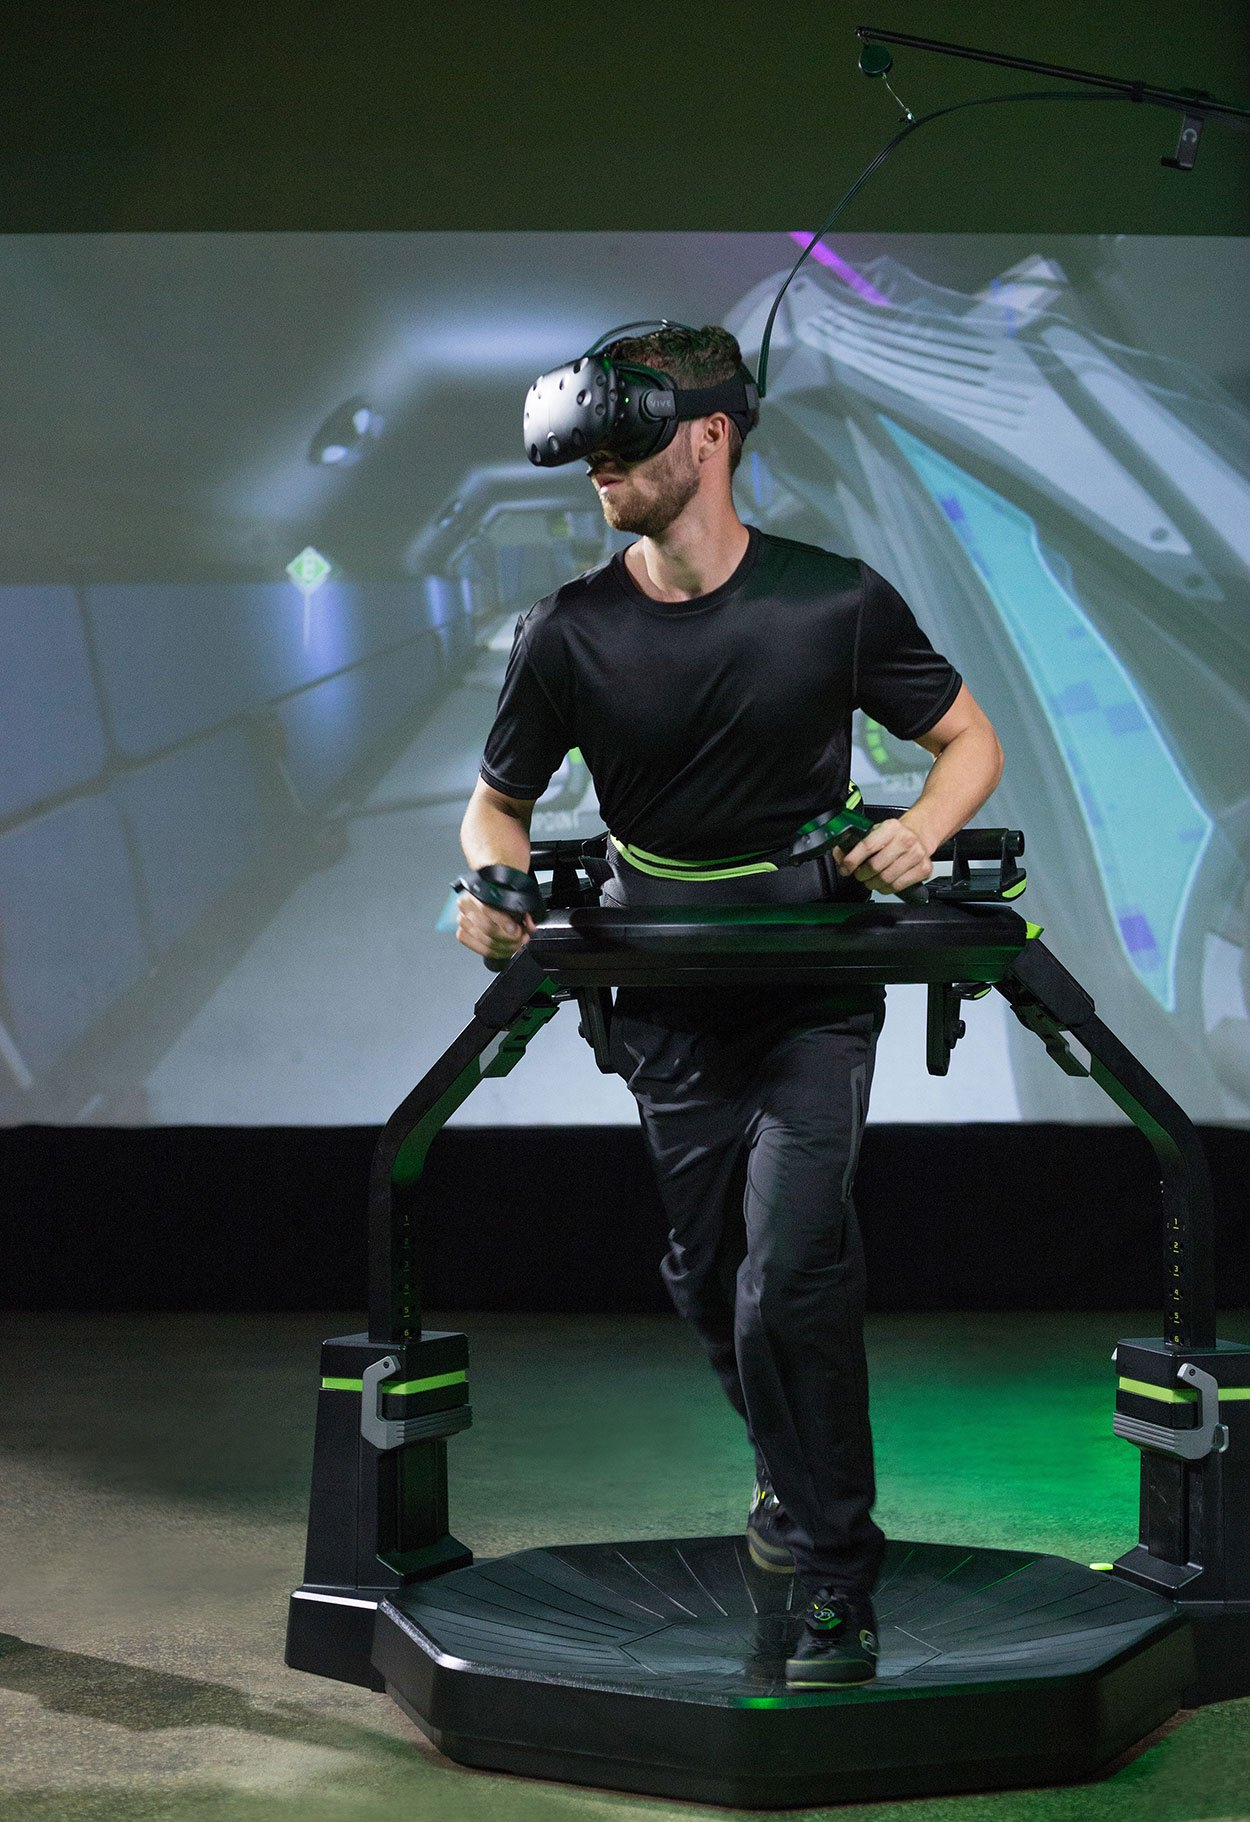 VR Event Rental Omni Directional Treadmill